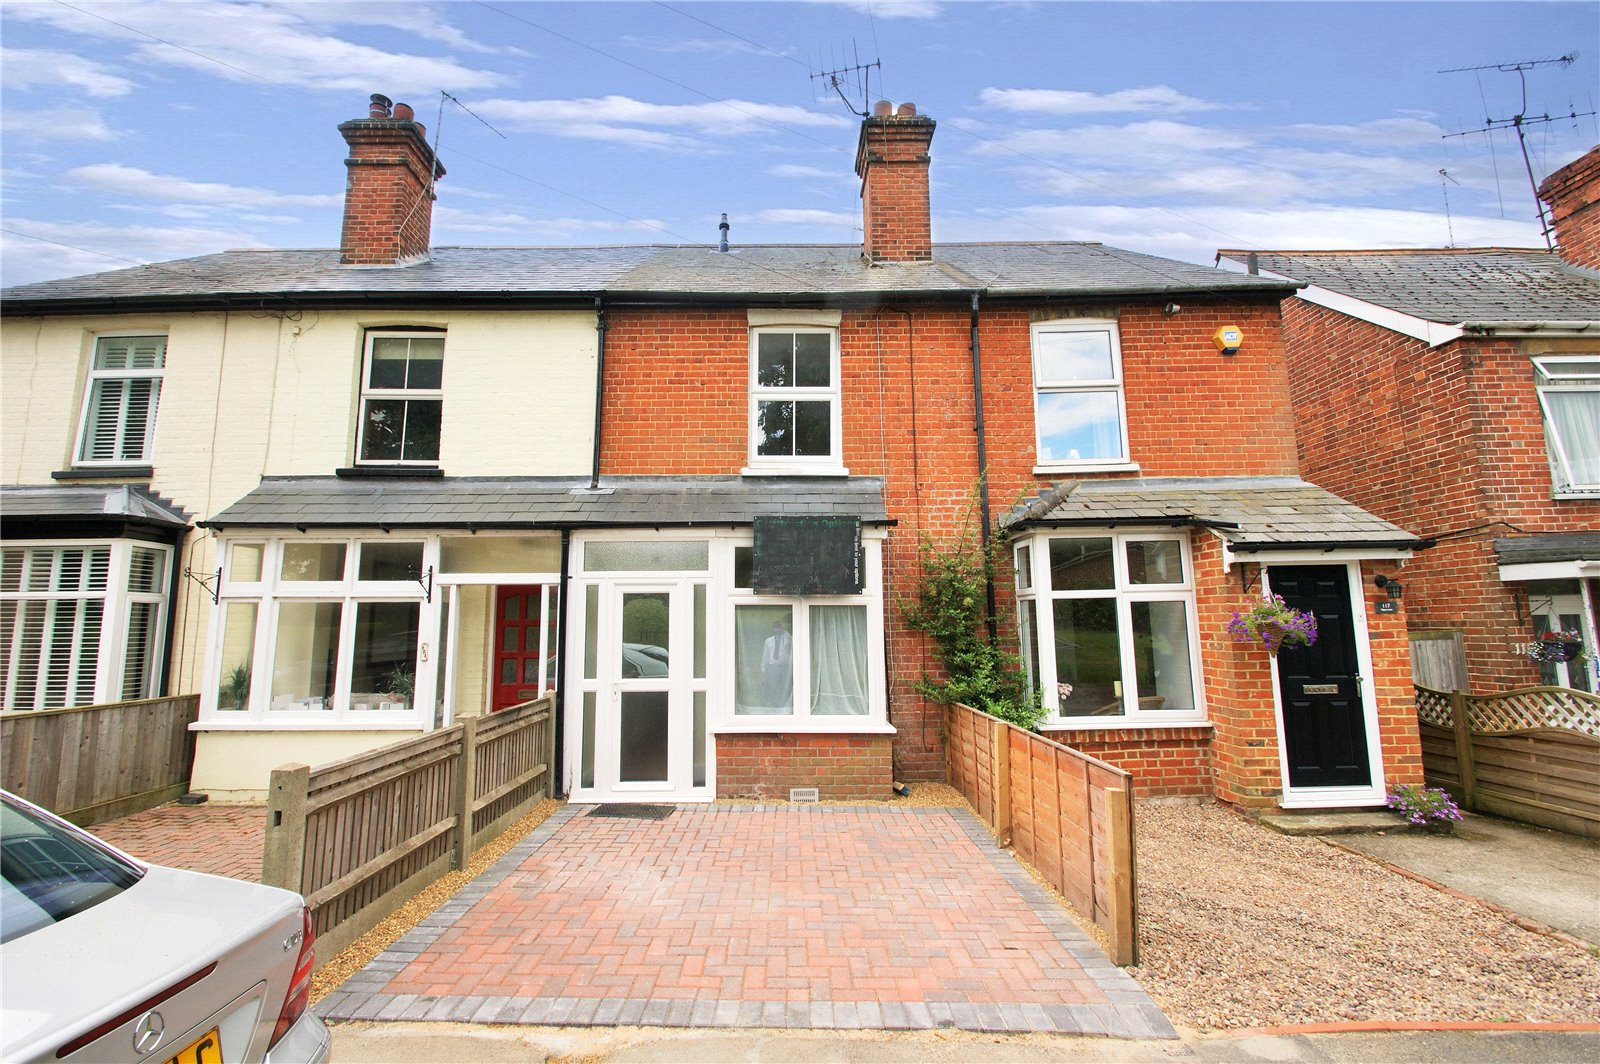 2 Bedrooms Terraced House for sale in Gipsy Lane, Wokingham, Berkshire, RG40